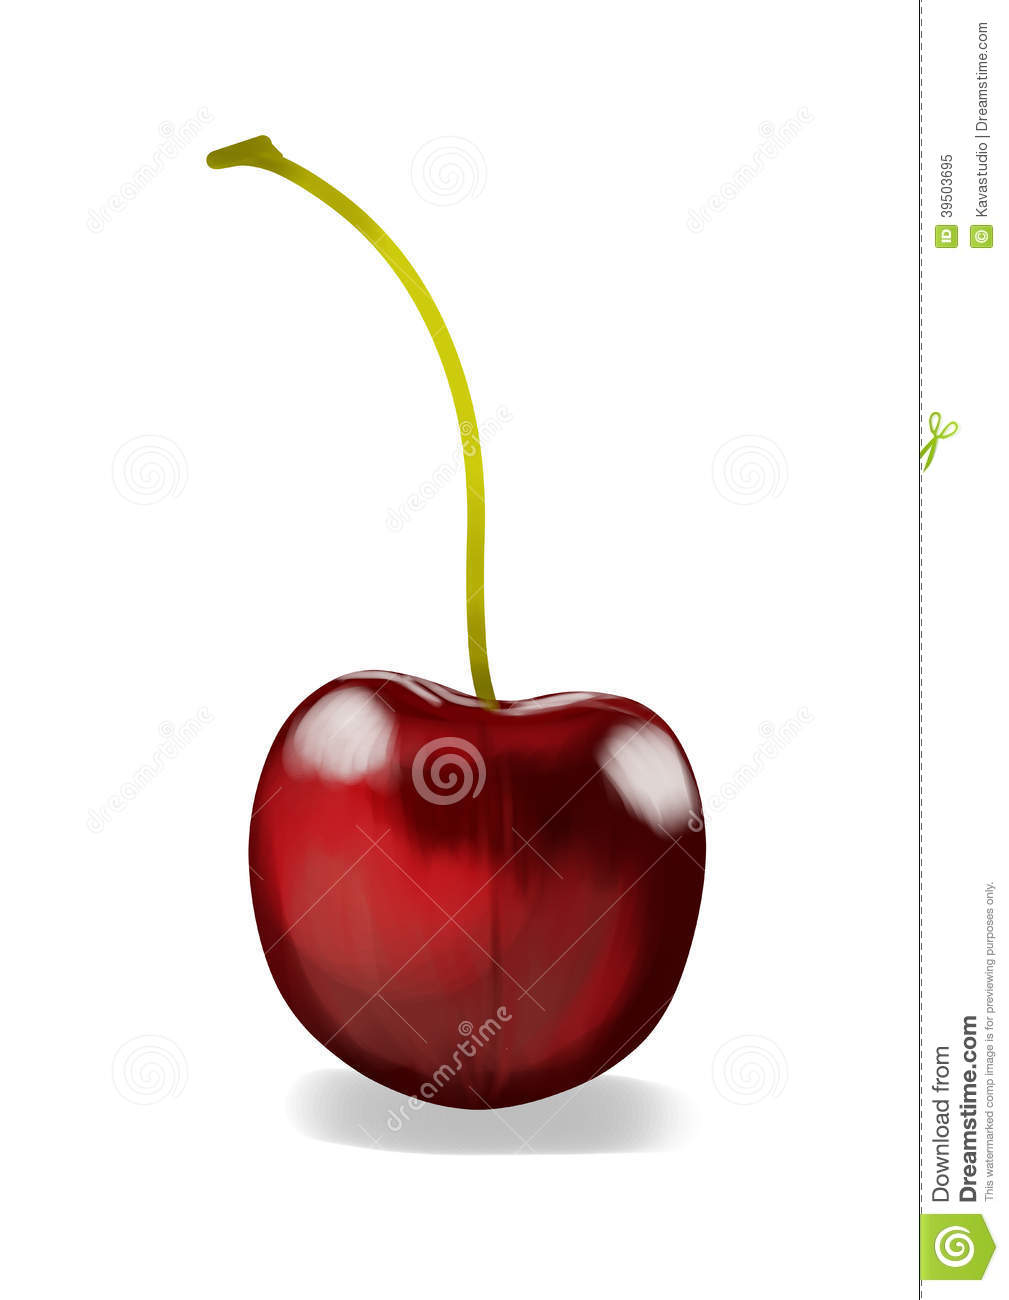 Realistic red cherry illustration, front of one fruit